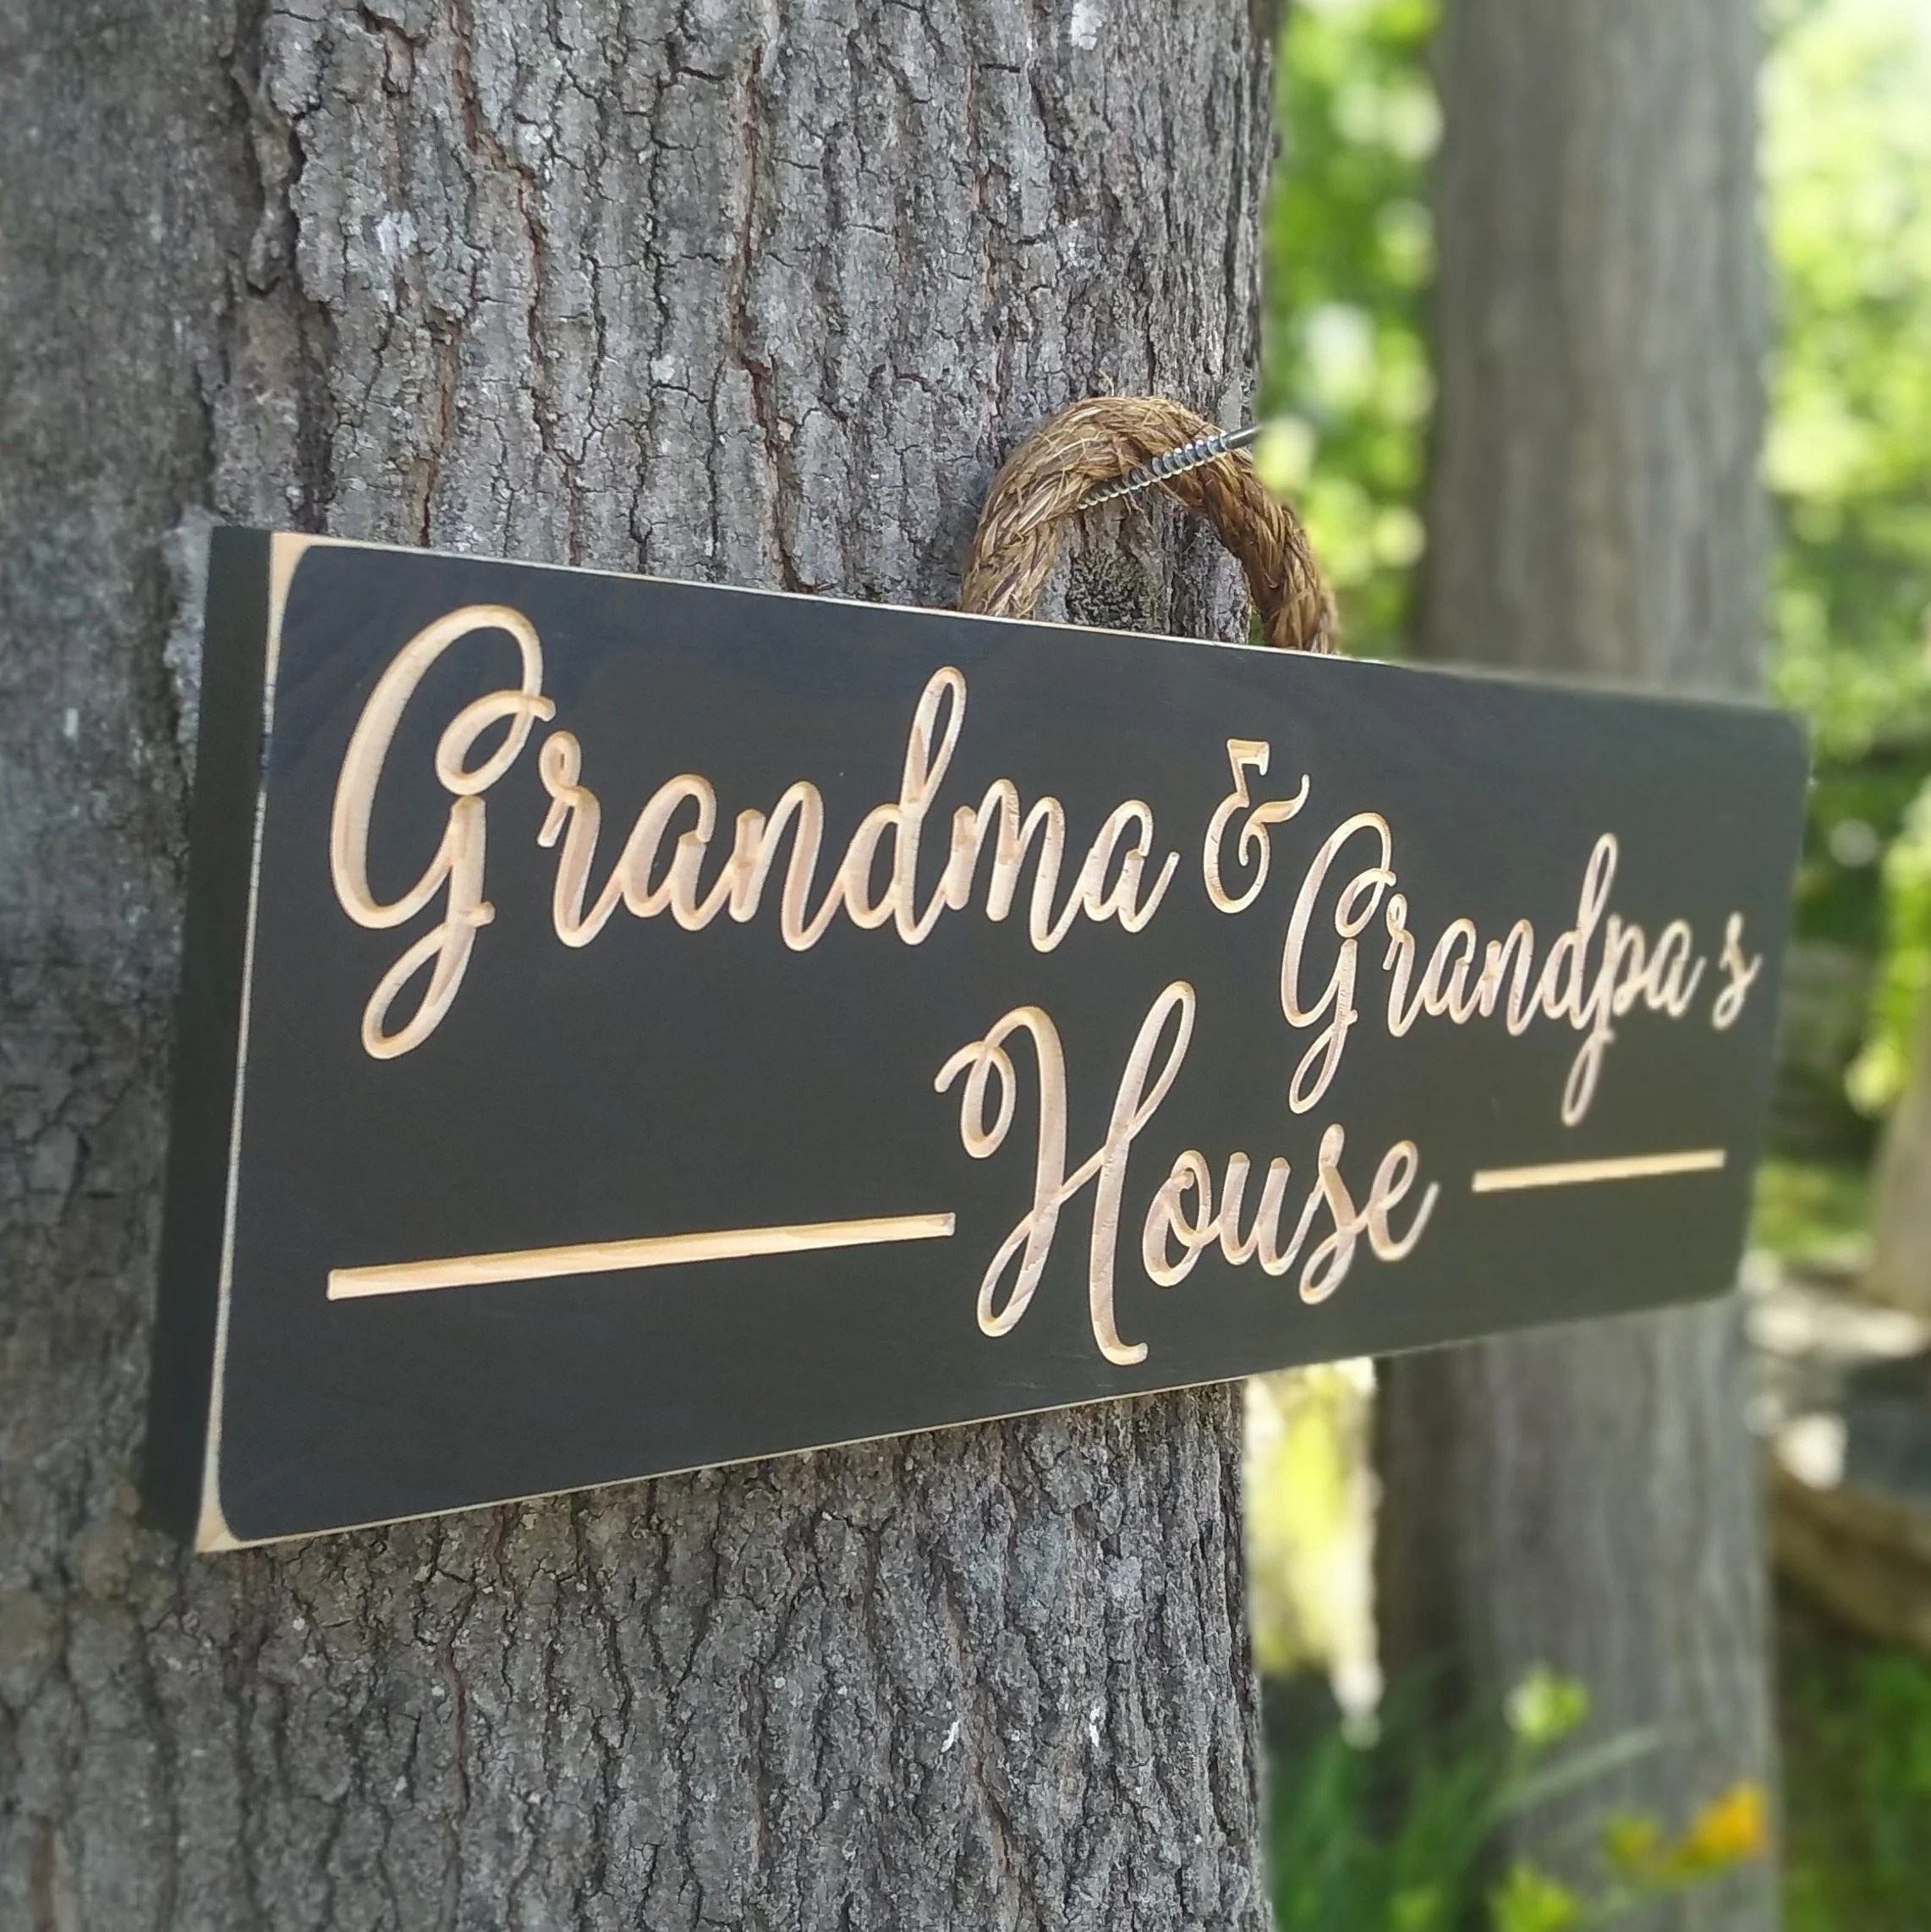 Personalized Wooden signsGrandma and Grandpa's image 3